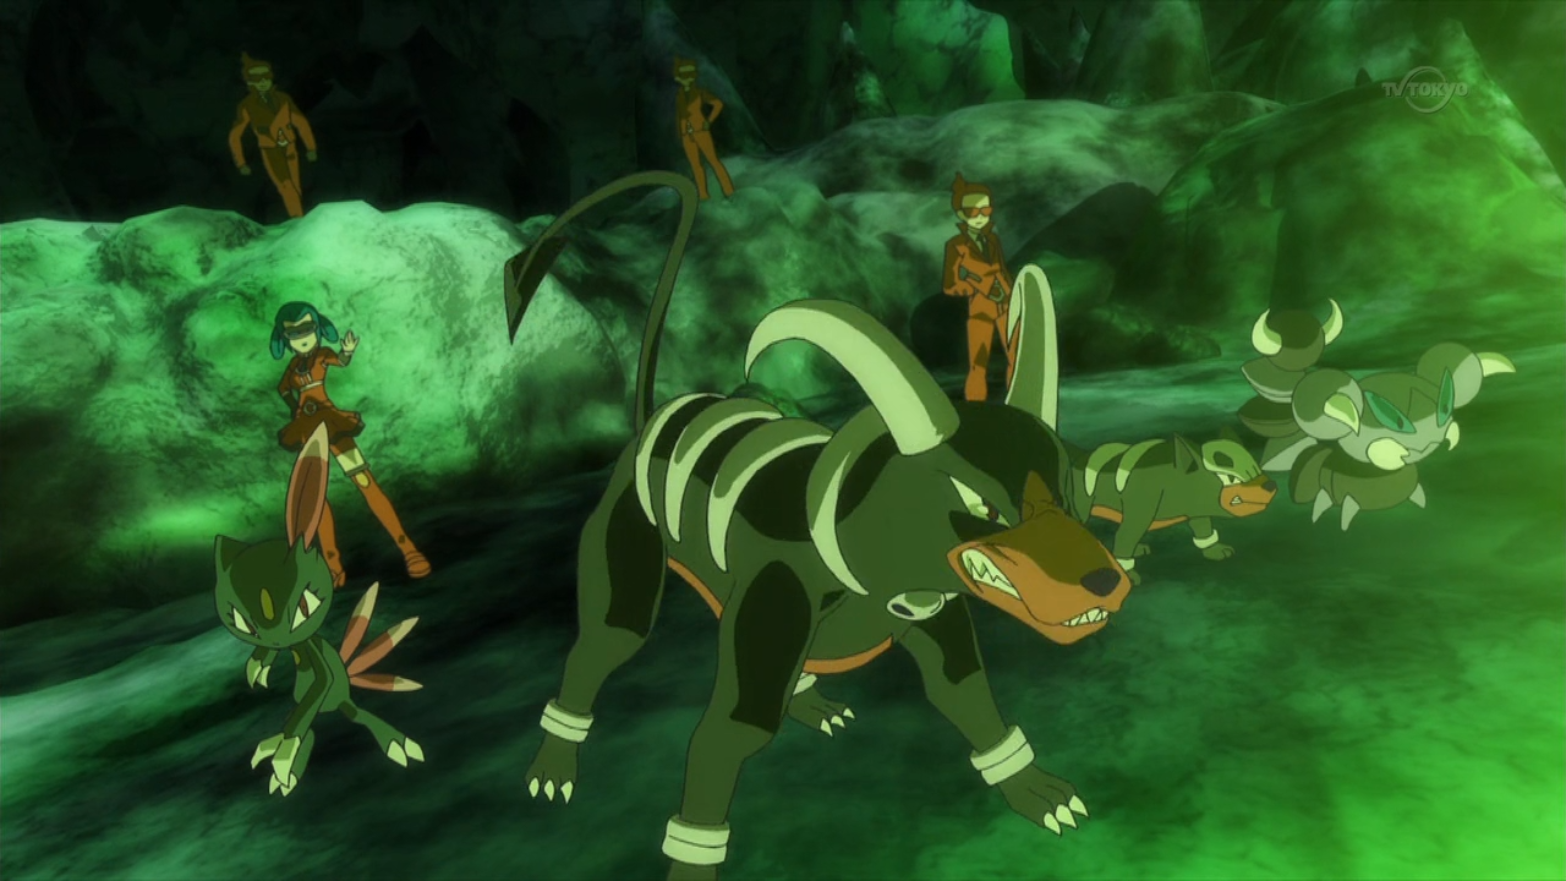 Mable sent Houndoom to battle Z-2, but lost to Zygarde's Land's Wrath.